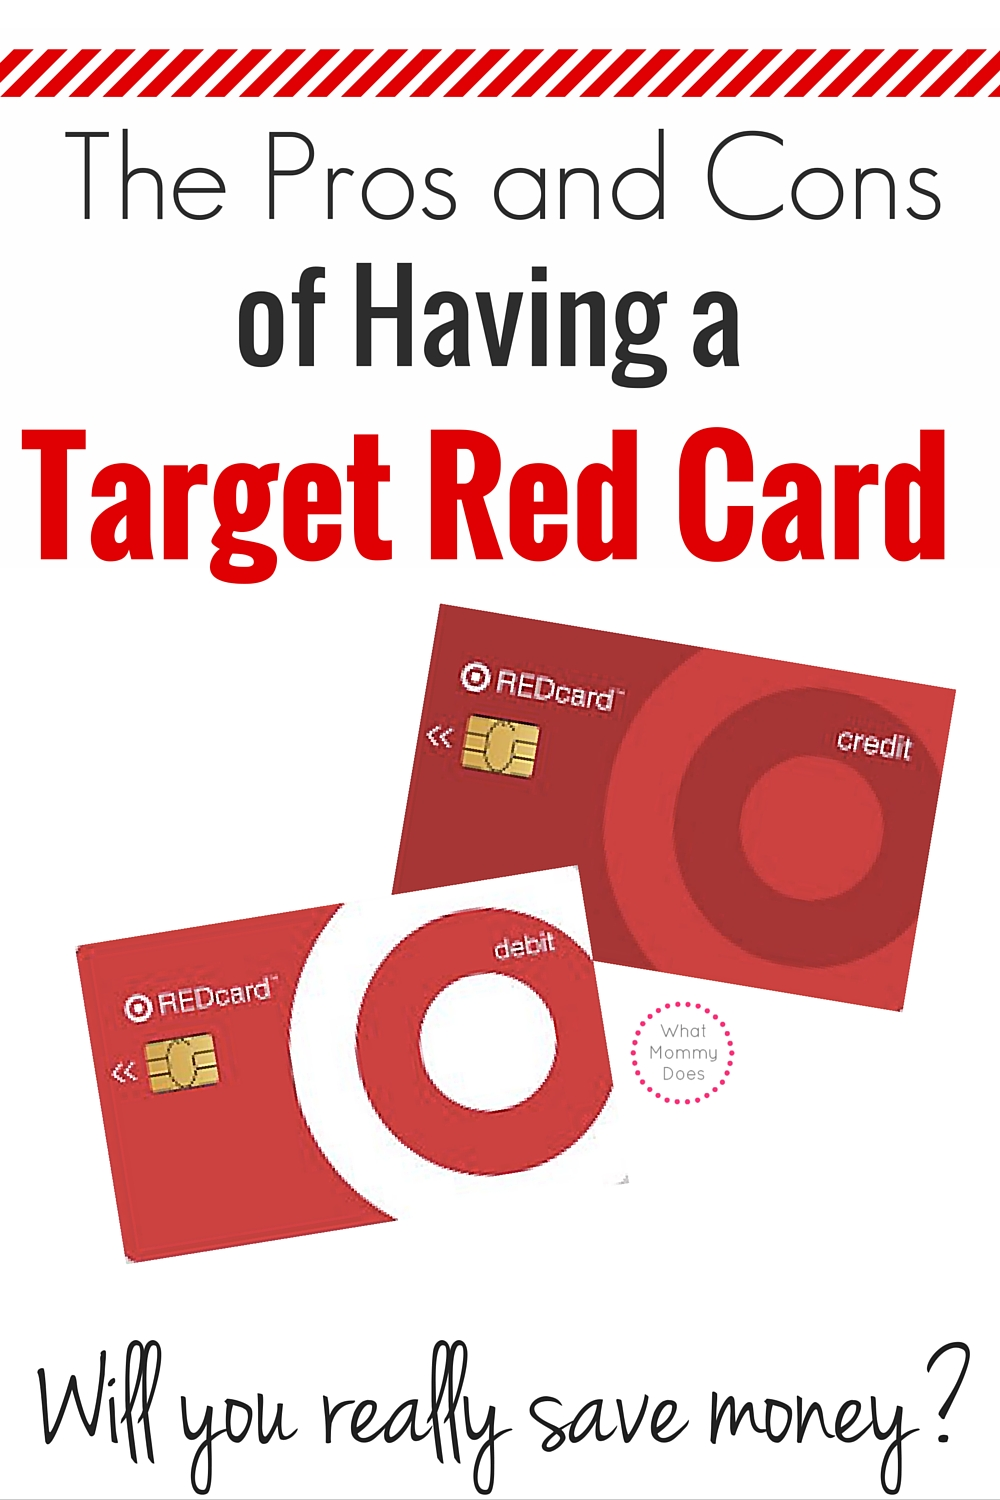 Target RedCard Benefits and Cons - Will having this card really help you save money at Target?